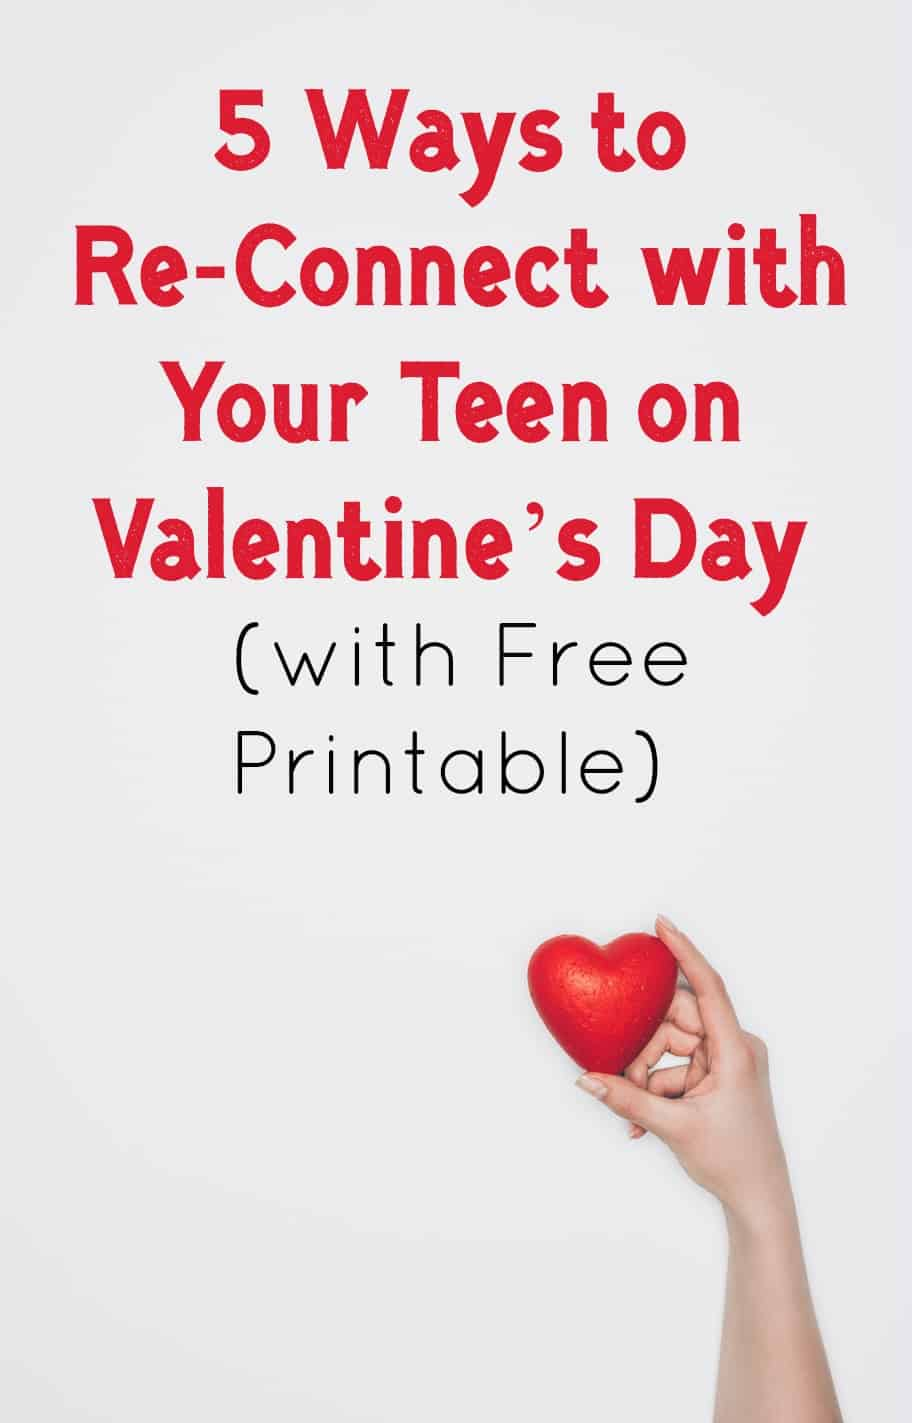 Spend Valentine's Day with your favorite person: your teen! If you're looking for fun ways to reconnect during the holiday, you'll love these ideas! Read on to learn more!